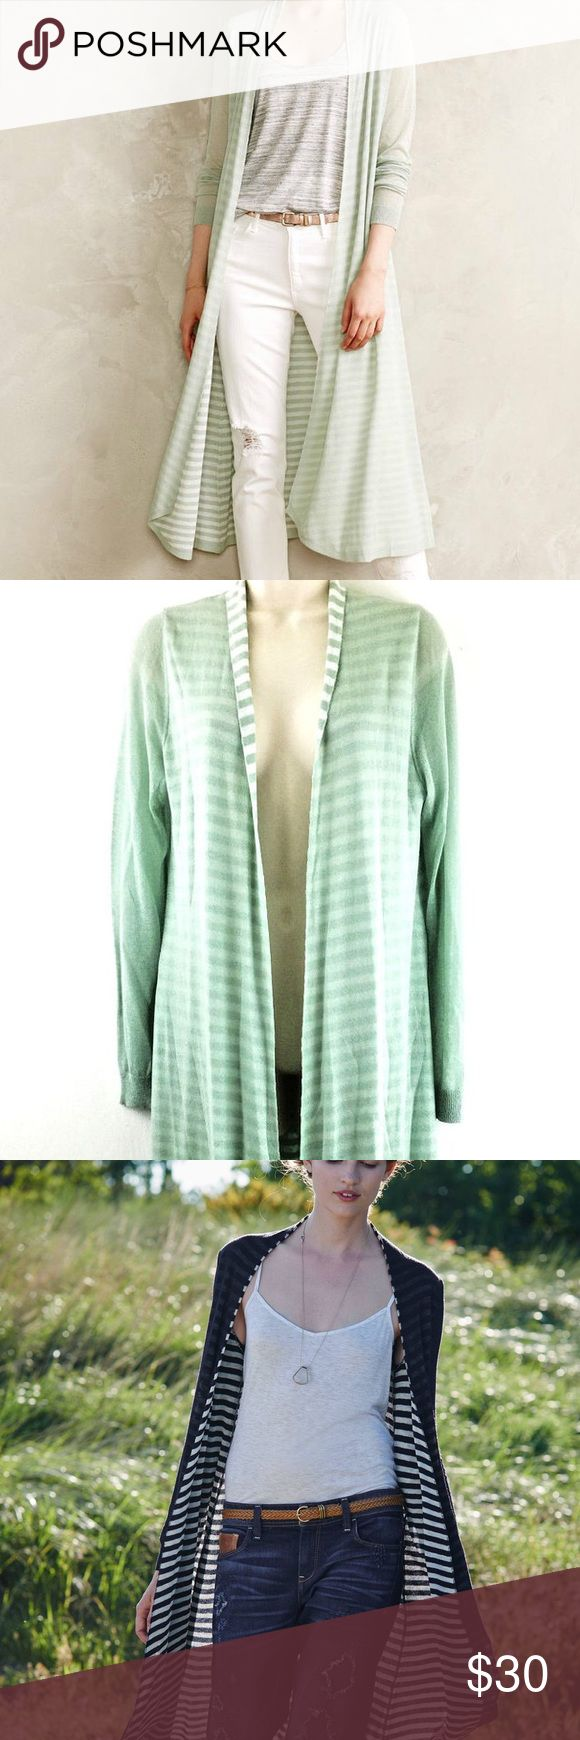 """ANTHROPOLOGIE Eclipsed Stripe Cardigan Mint When it comes to basics, we can't get enough of easy, thoughtful pieces that go beyond the call of casual duty. This transitional cardi is a cut above your standard long sleeve layer. A hint of striped lining and an extended length make this piece a wardrobe go-to. SLIGHT TEAR ON INNER ARM SEE PHOTOS! Can be fixed or Sleeve rolled to hide. Also a few spots on front.  By Ladakh Open front Acrylic, nylon Hand wash Regular: 43.5""""L Anthropologie…"""